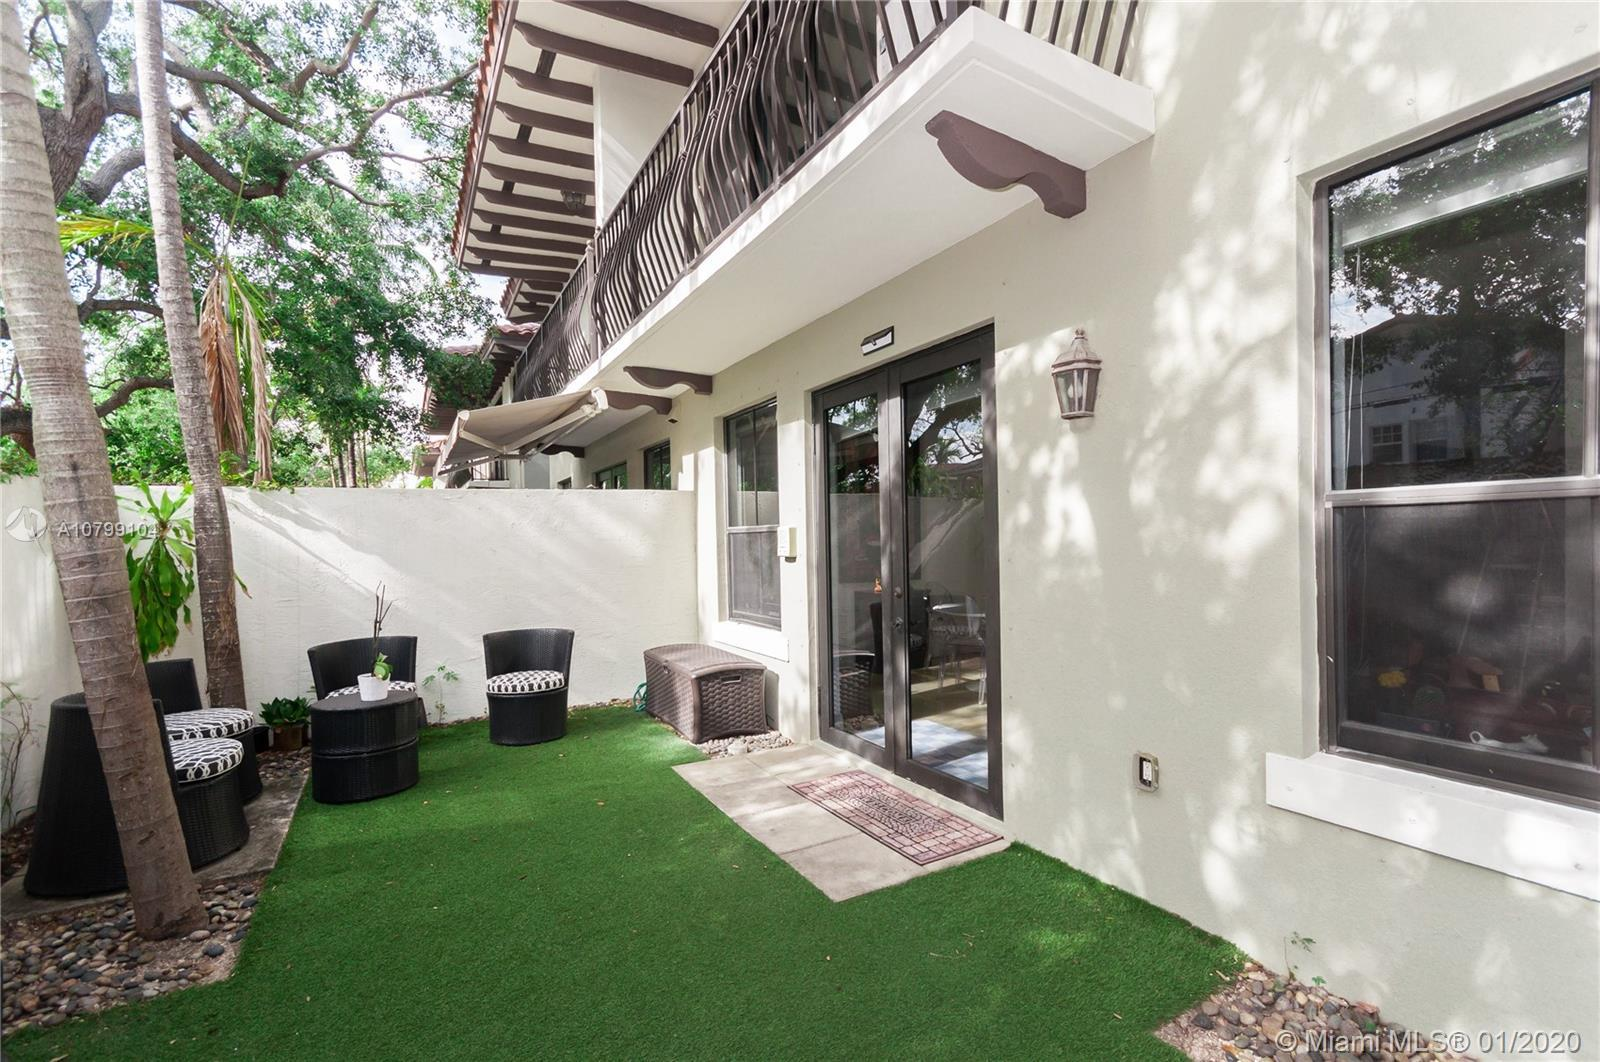 EXCLUSIVE, ENCLOSED, SECURE & PRIVATE COMMUNITY IN CENTRAL COCONUT GROVE LOCATION. 3 BED, 2.5 BATHS,